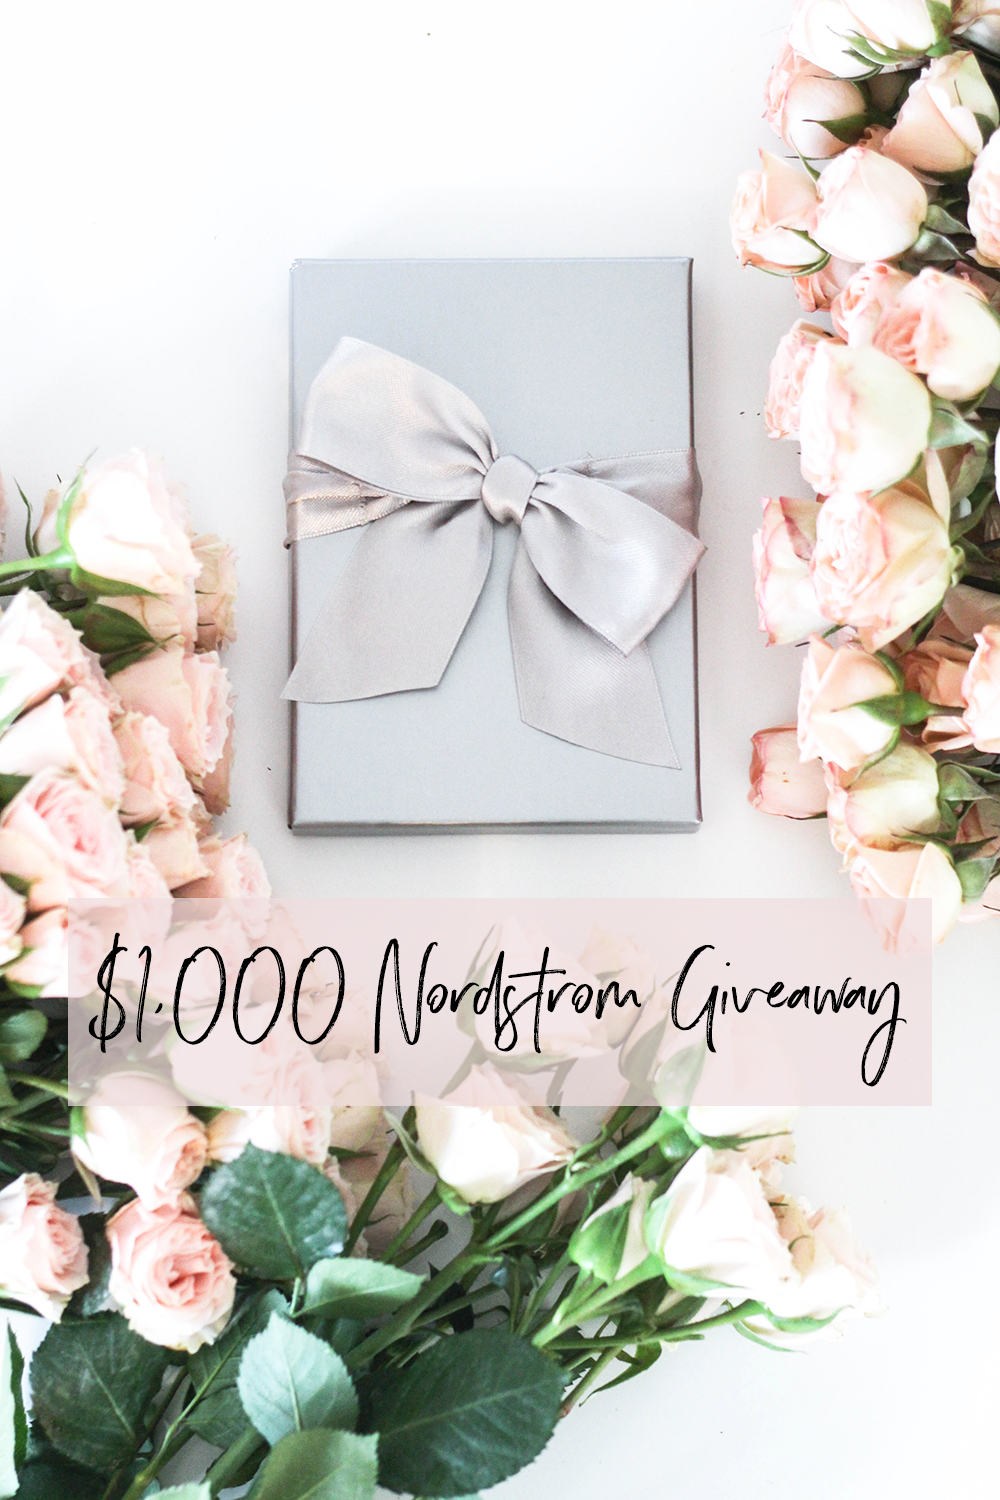 Enter to win $1000 Nordstrom Gift Card Giveaway